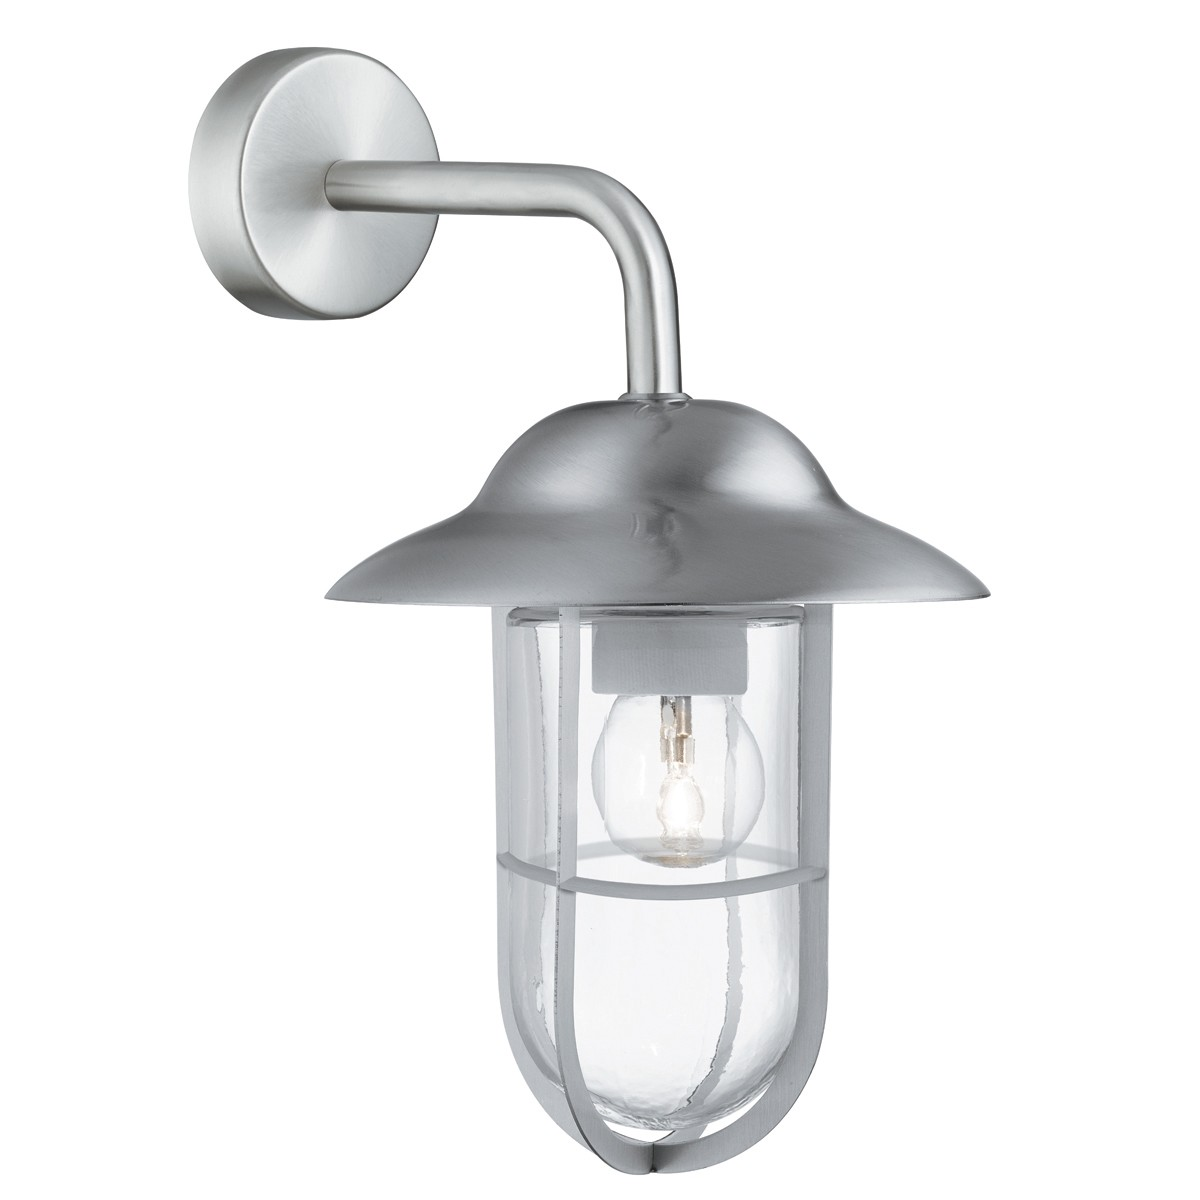 WELL GLASS IP44 STAINLESS STEEL OUTDOOR WALL LANTERN 3291SS